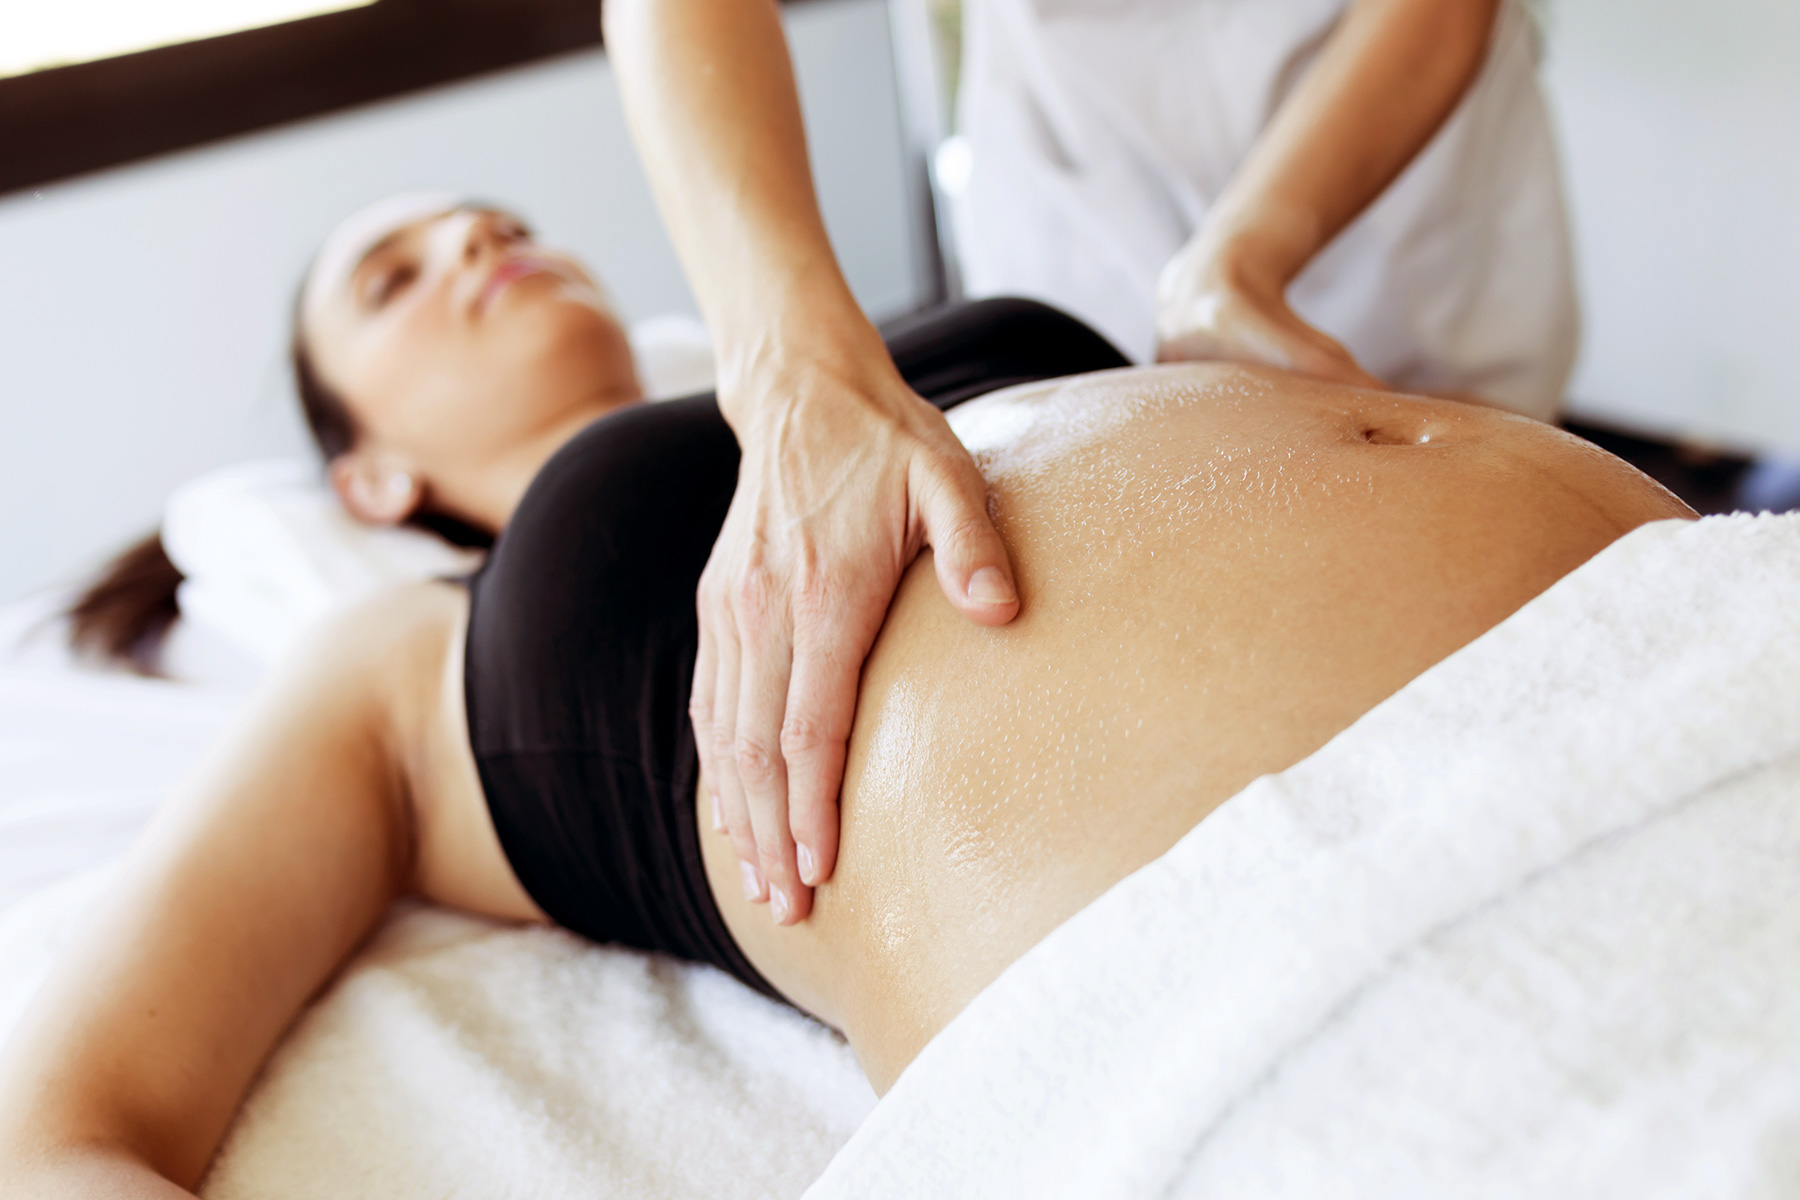 You Should Not Start A Massage Practice With These 3 Things